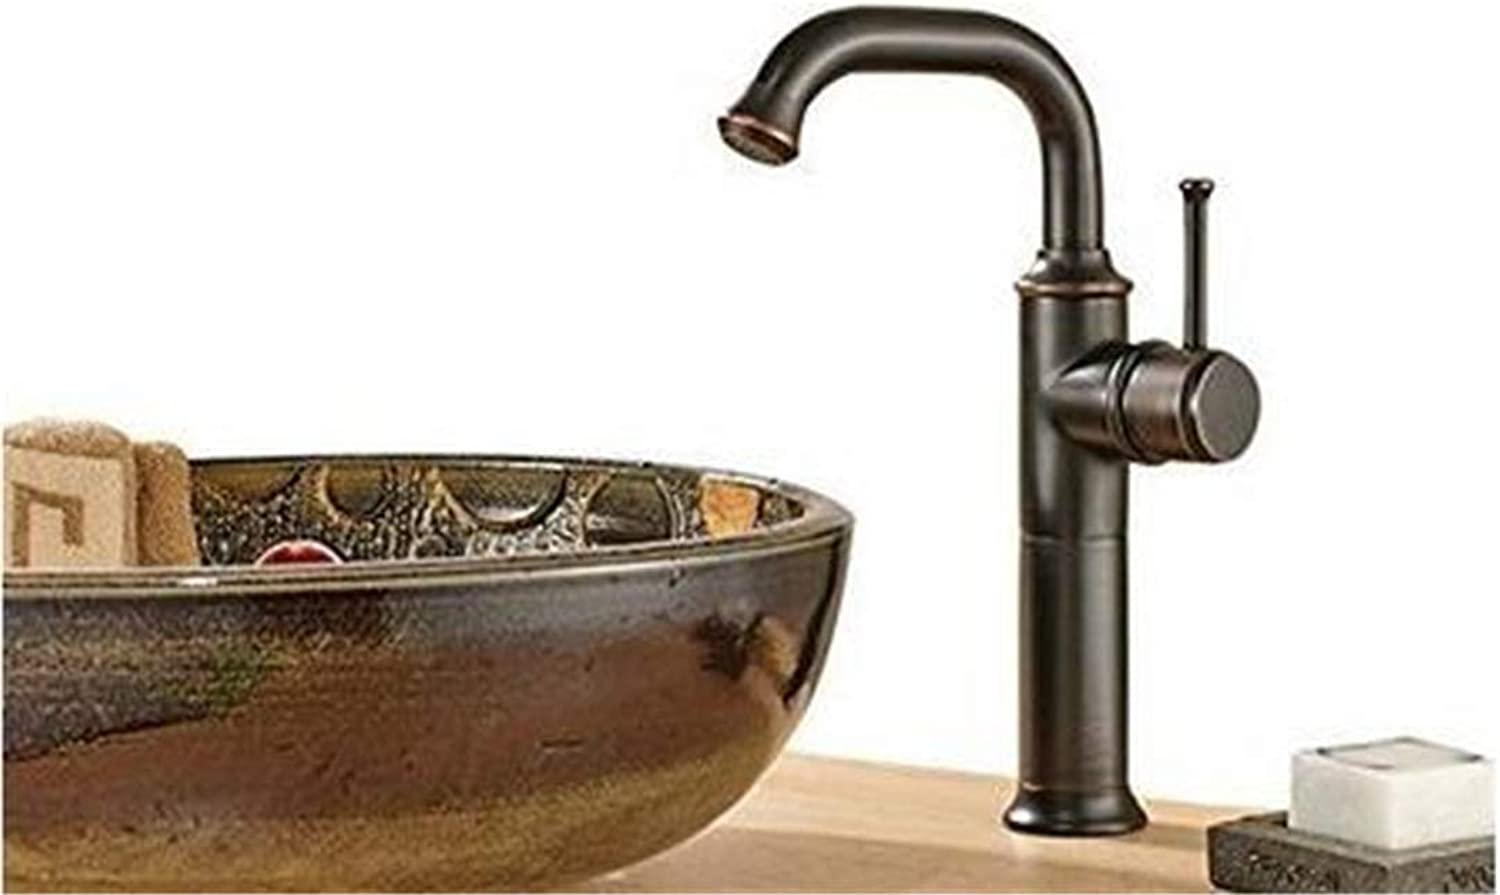 Faucets Basin Mixer Sink Faucet Tall Bow Solid Brass Oil Rubbed Blackened Black Hotel Style